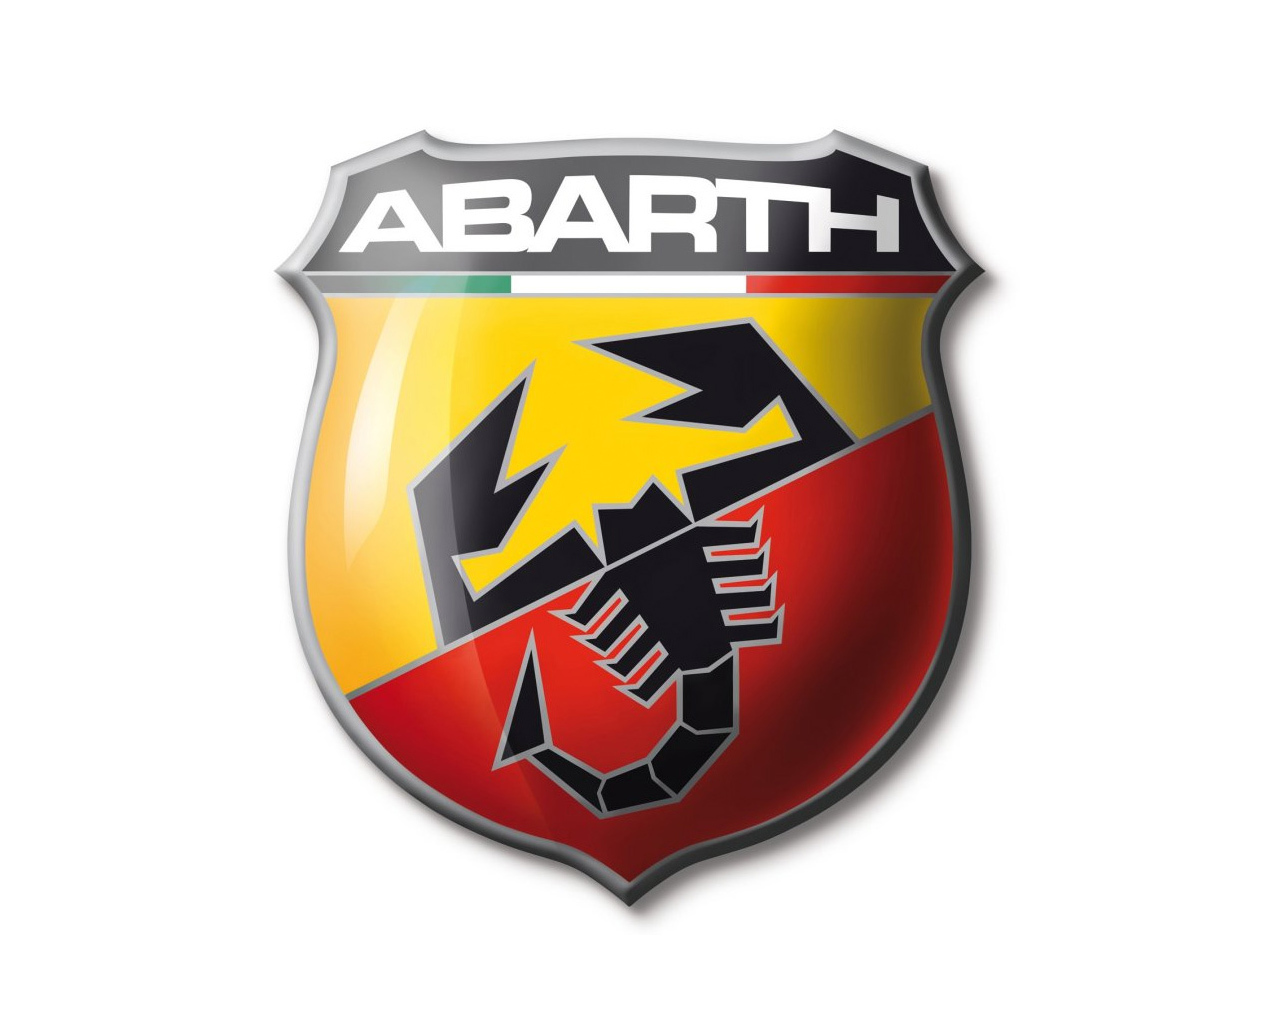 abarth background in House HD Wallpaper